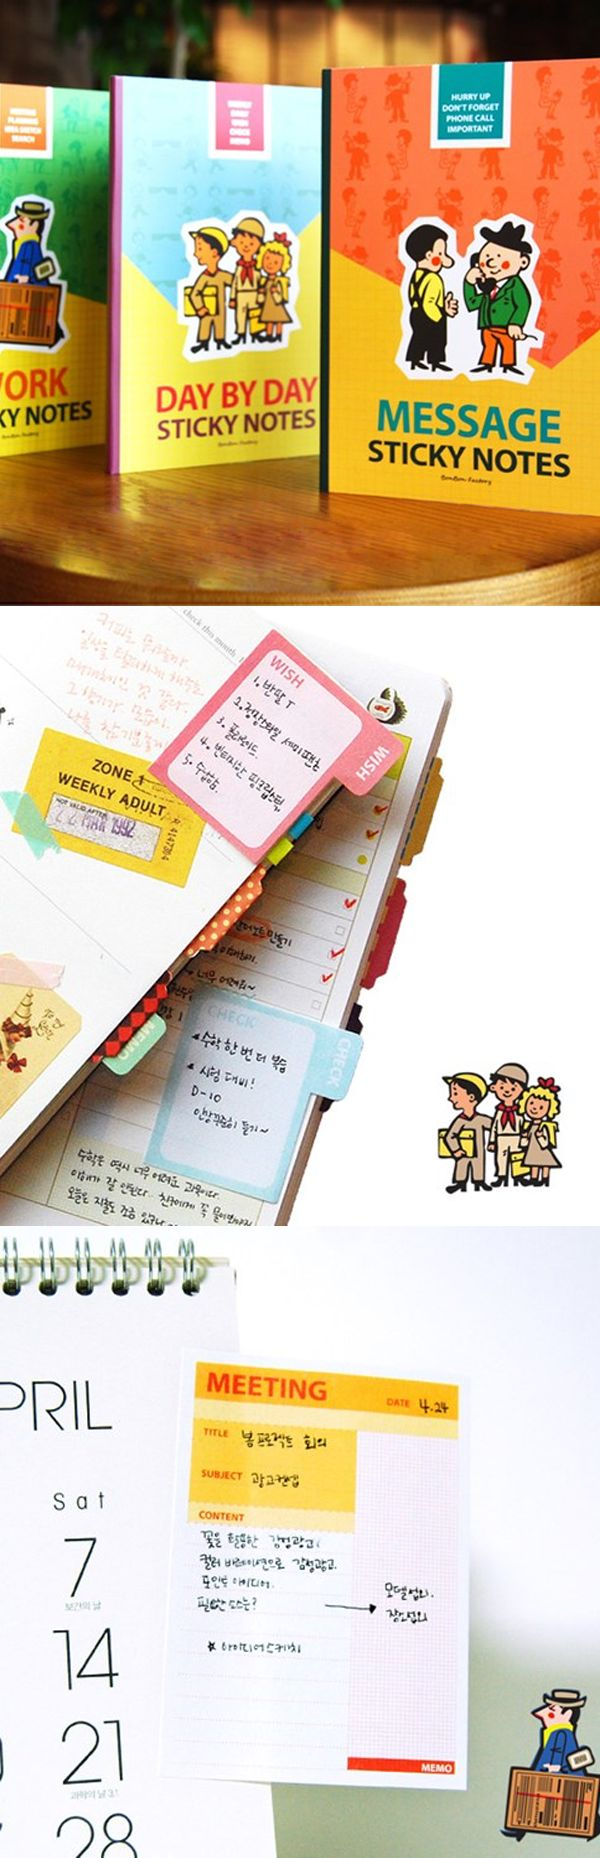 Here are sticky notes for any kinds of situation! Take your pick and see what kind of notes you can leave to yourself or others. The Schedule Sticky Notebook will make sure you won't forget with its vibrant colorful presentation.